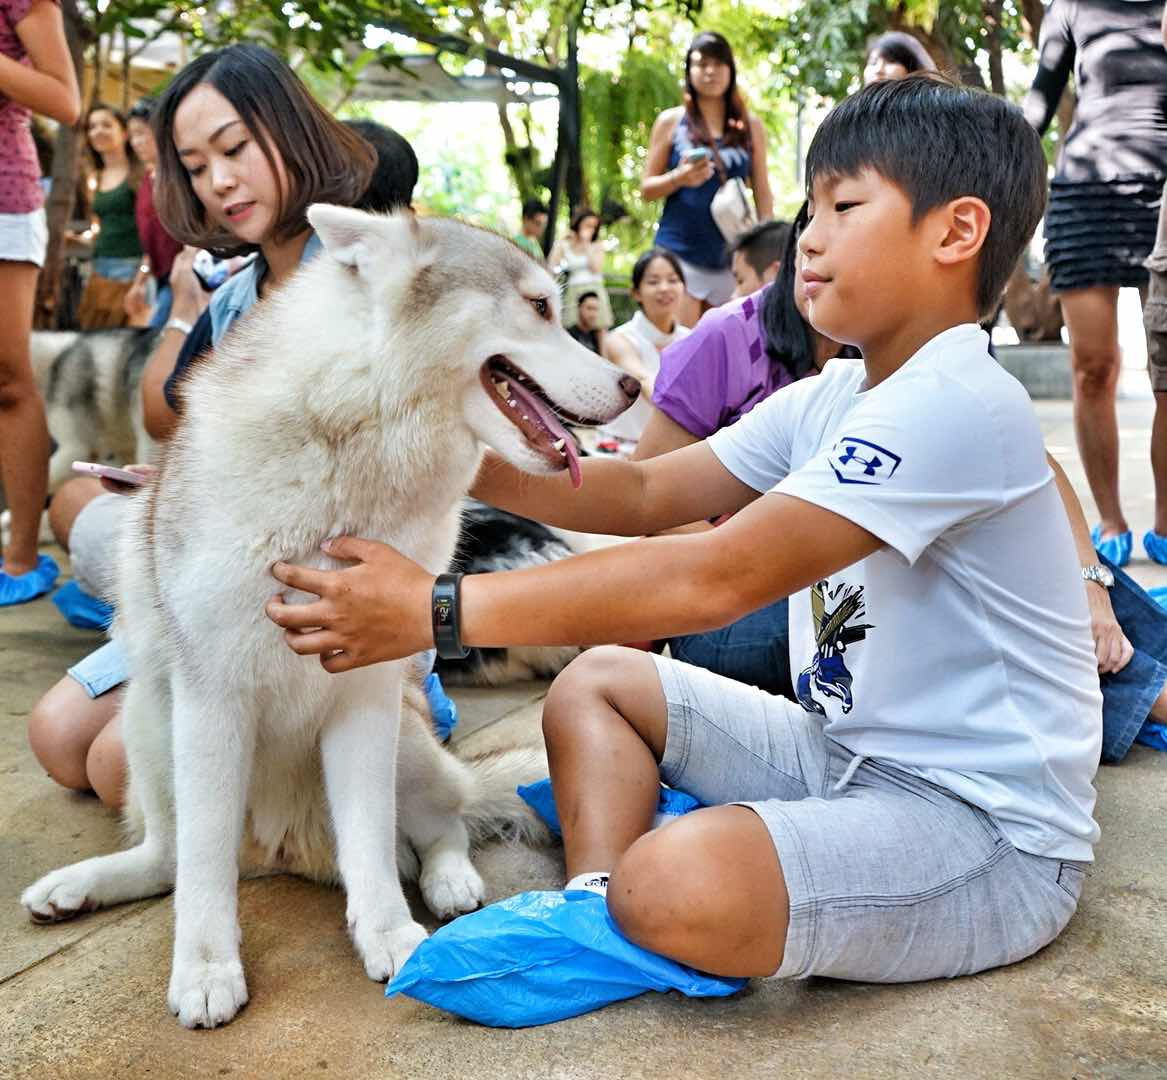 Boy With Husky At Neverland Siberian True Love Cafe, Bangkok - AspirantSG